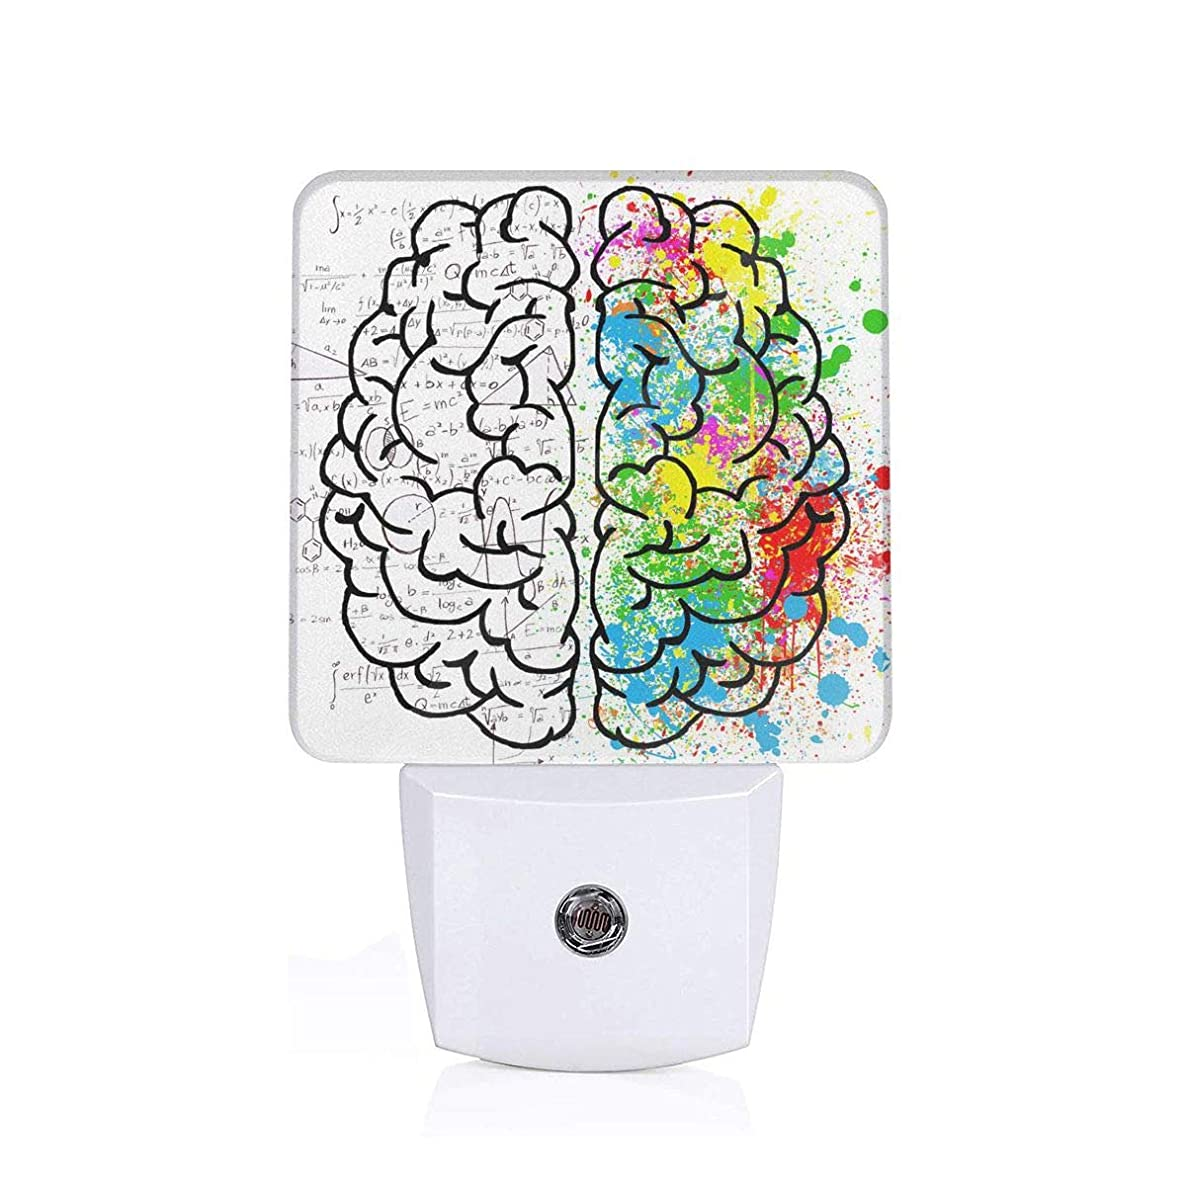 NIGTLIGHT Semi-Colored Half-Digit Brain Personality Funny Pattern LED Night Light Automatic Control Dusk to Dawn Switch Plug-in Nightlight for Bedroom Bathroom Hallway Stairways Children